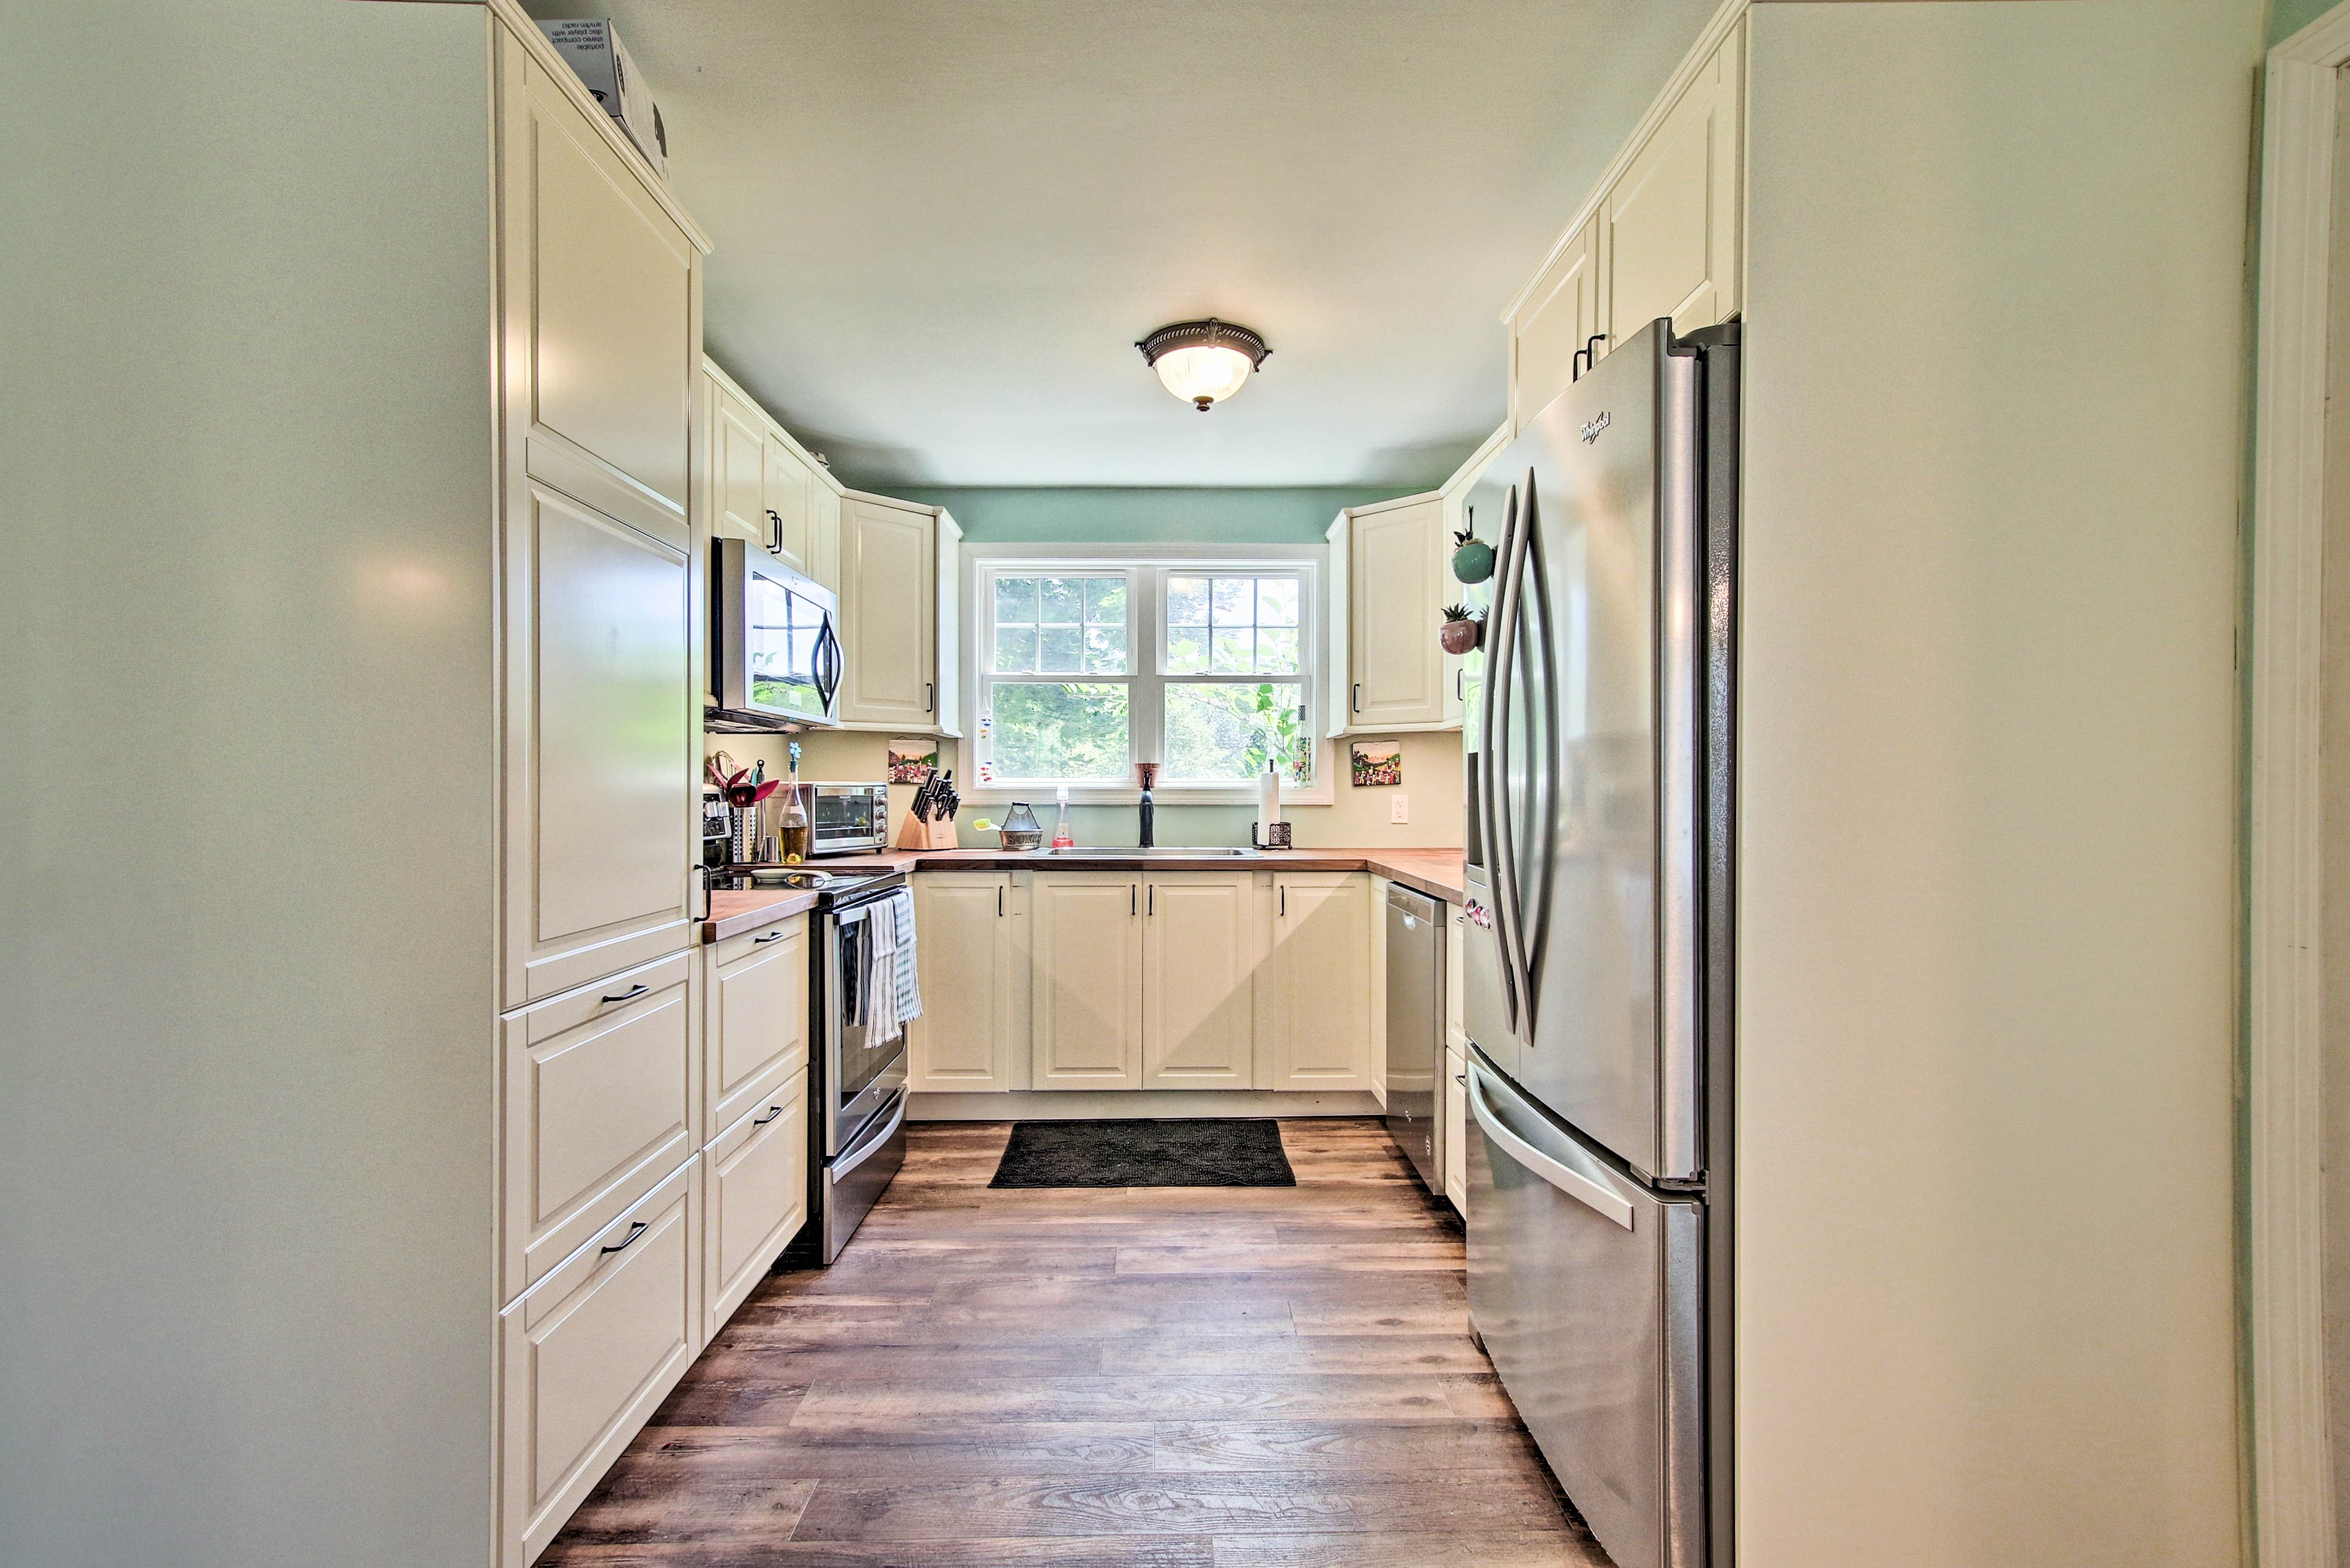 Make use of the fully equipped kitchen for savory meals.